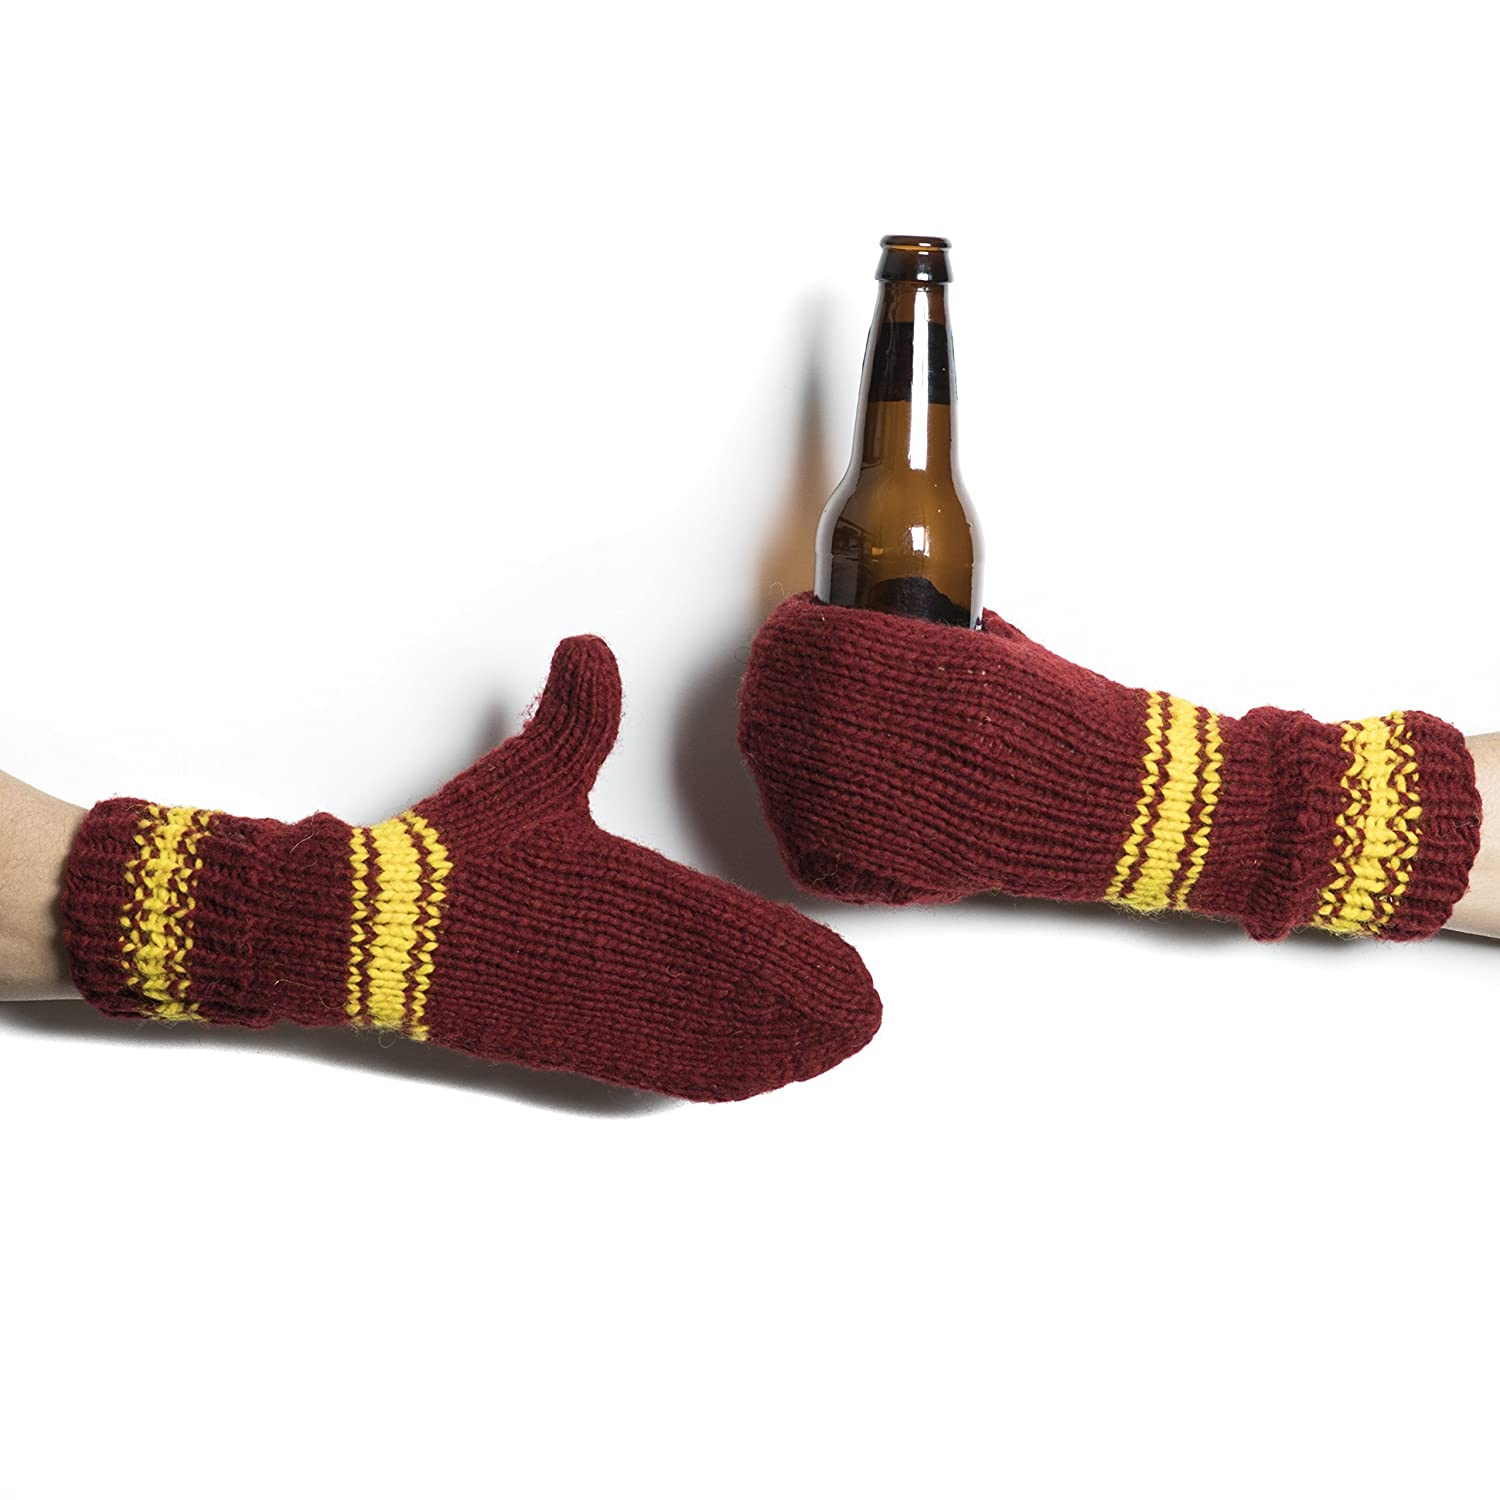 Red Gold Striped Beer Mitten Set Wool Tailgating Mitten Pair Glove